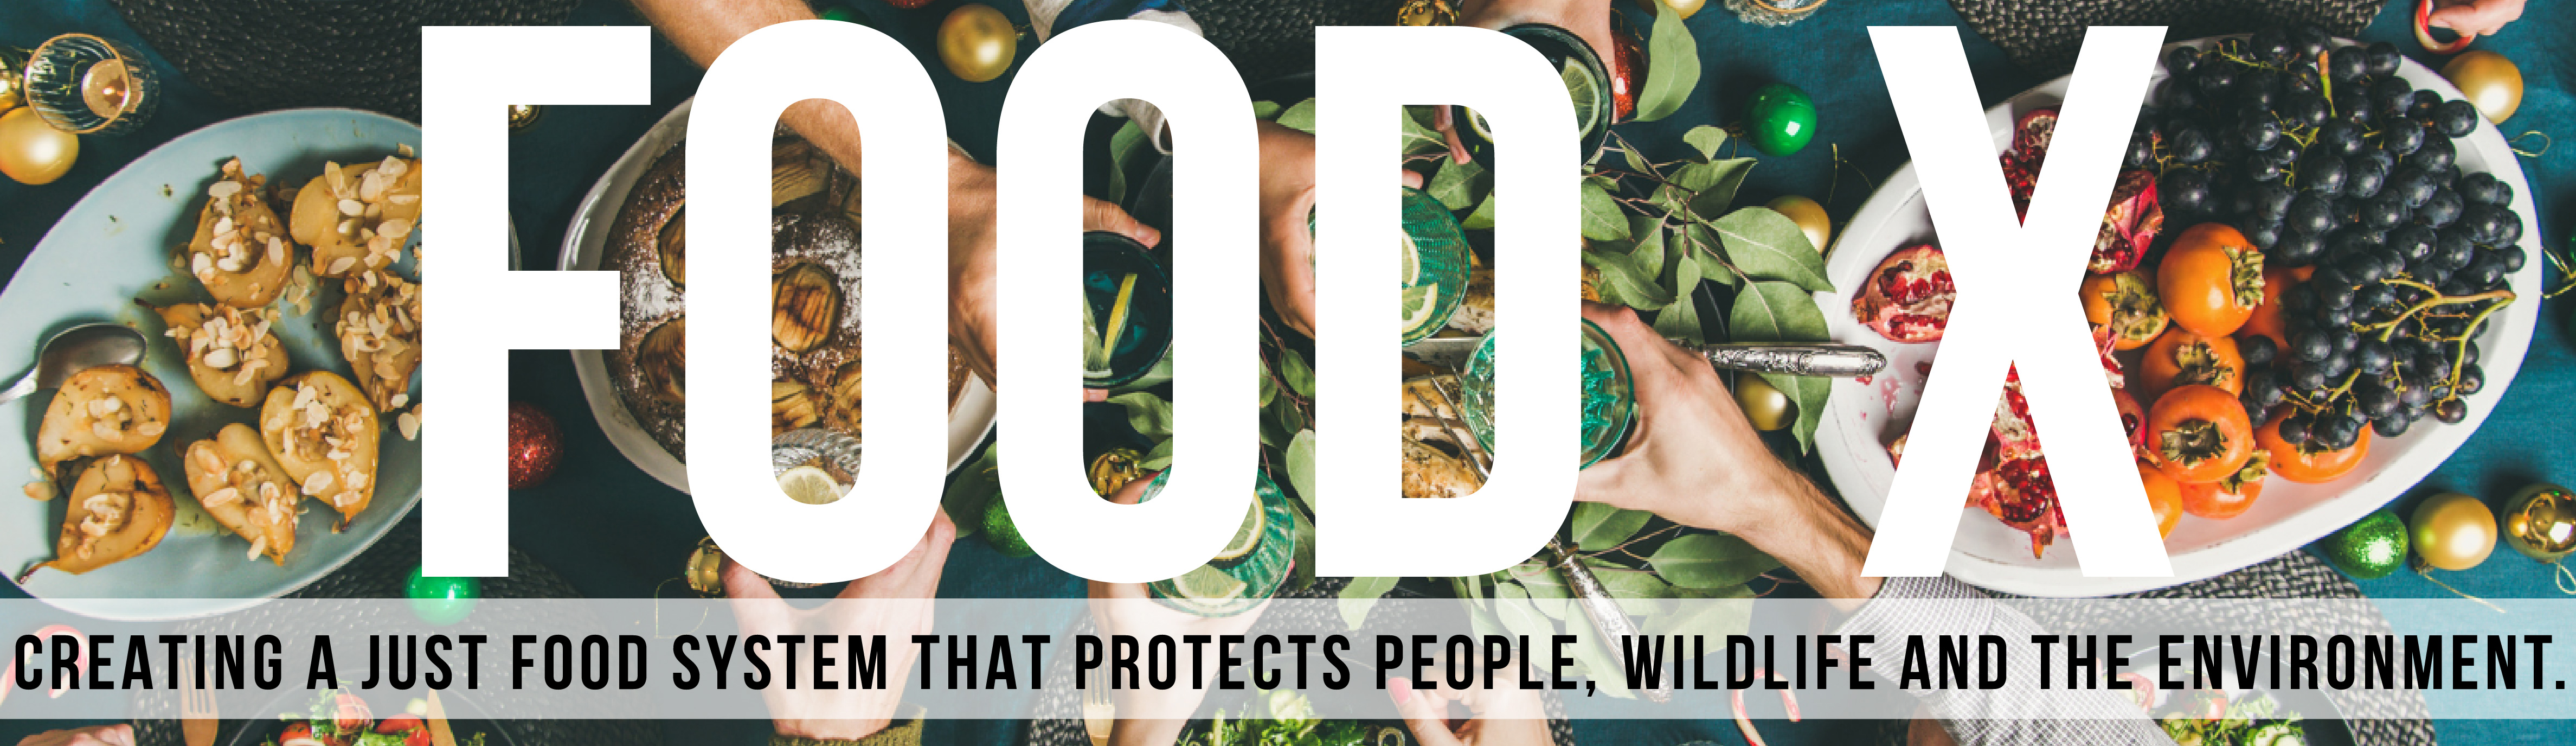 Food X: Creating a Just Food System That Protects People, Wildlife and the Environment.